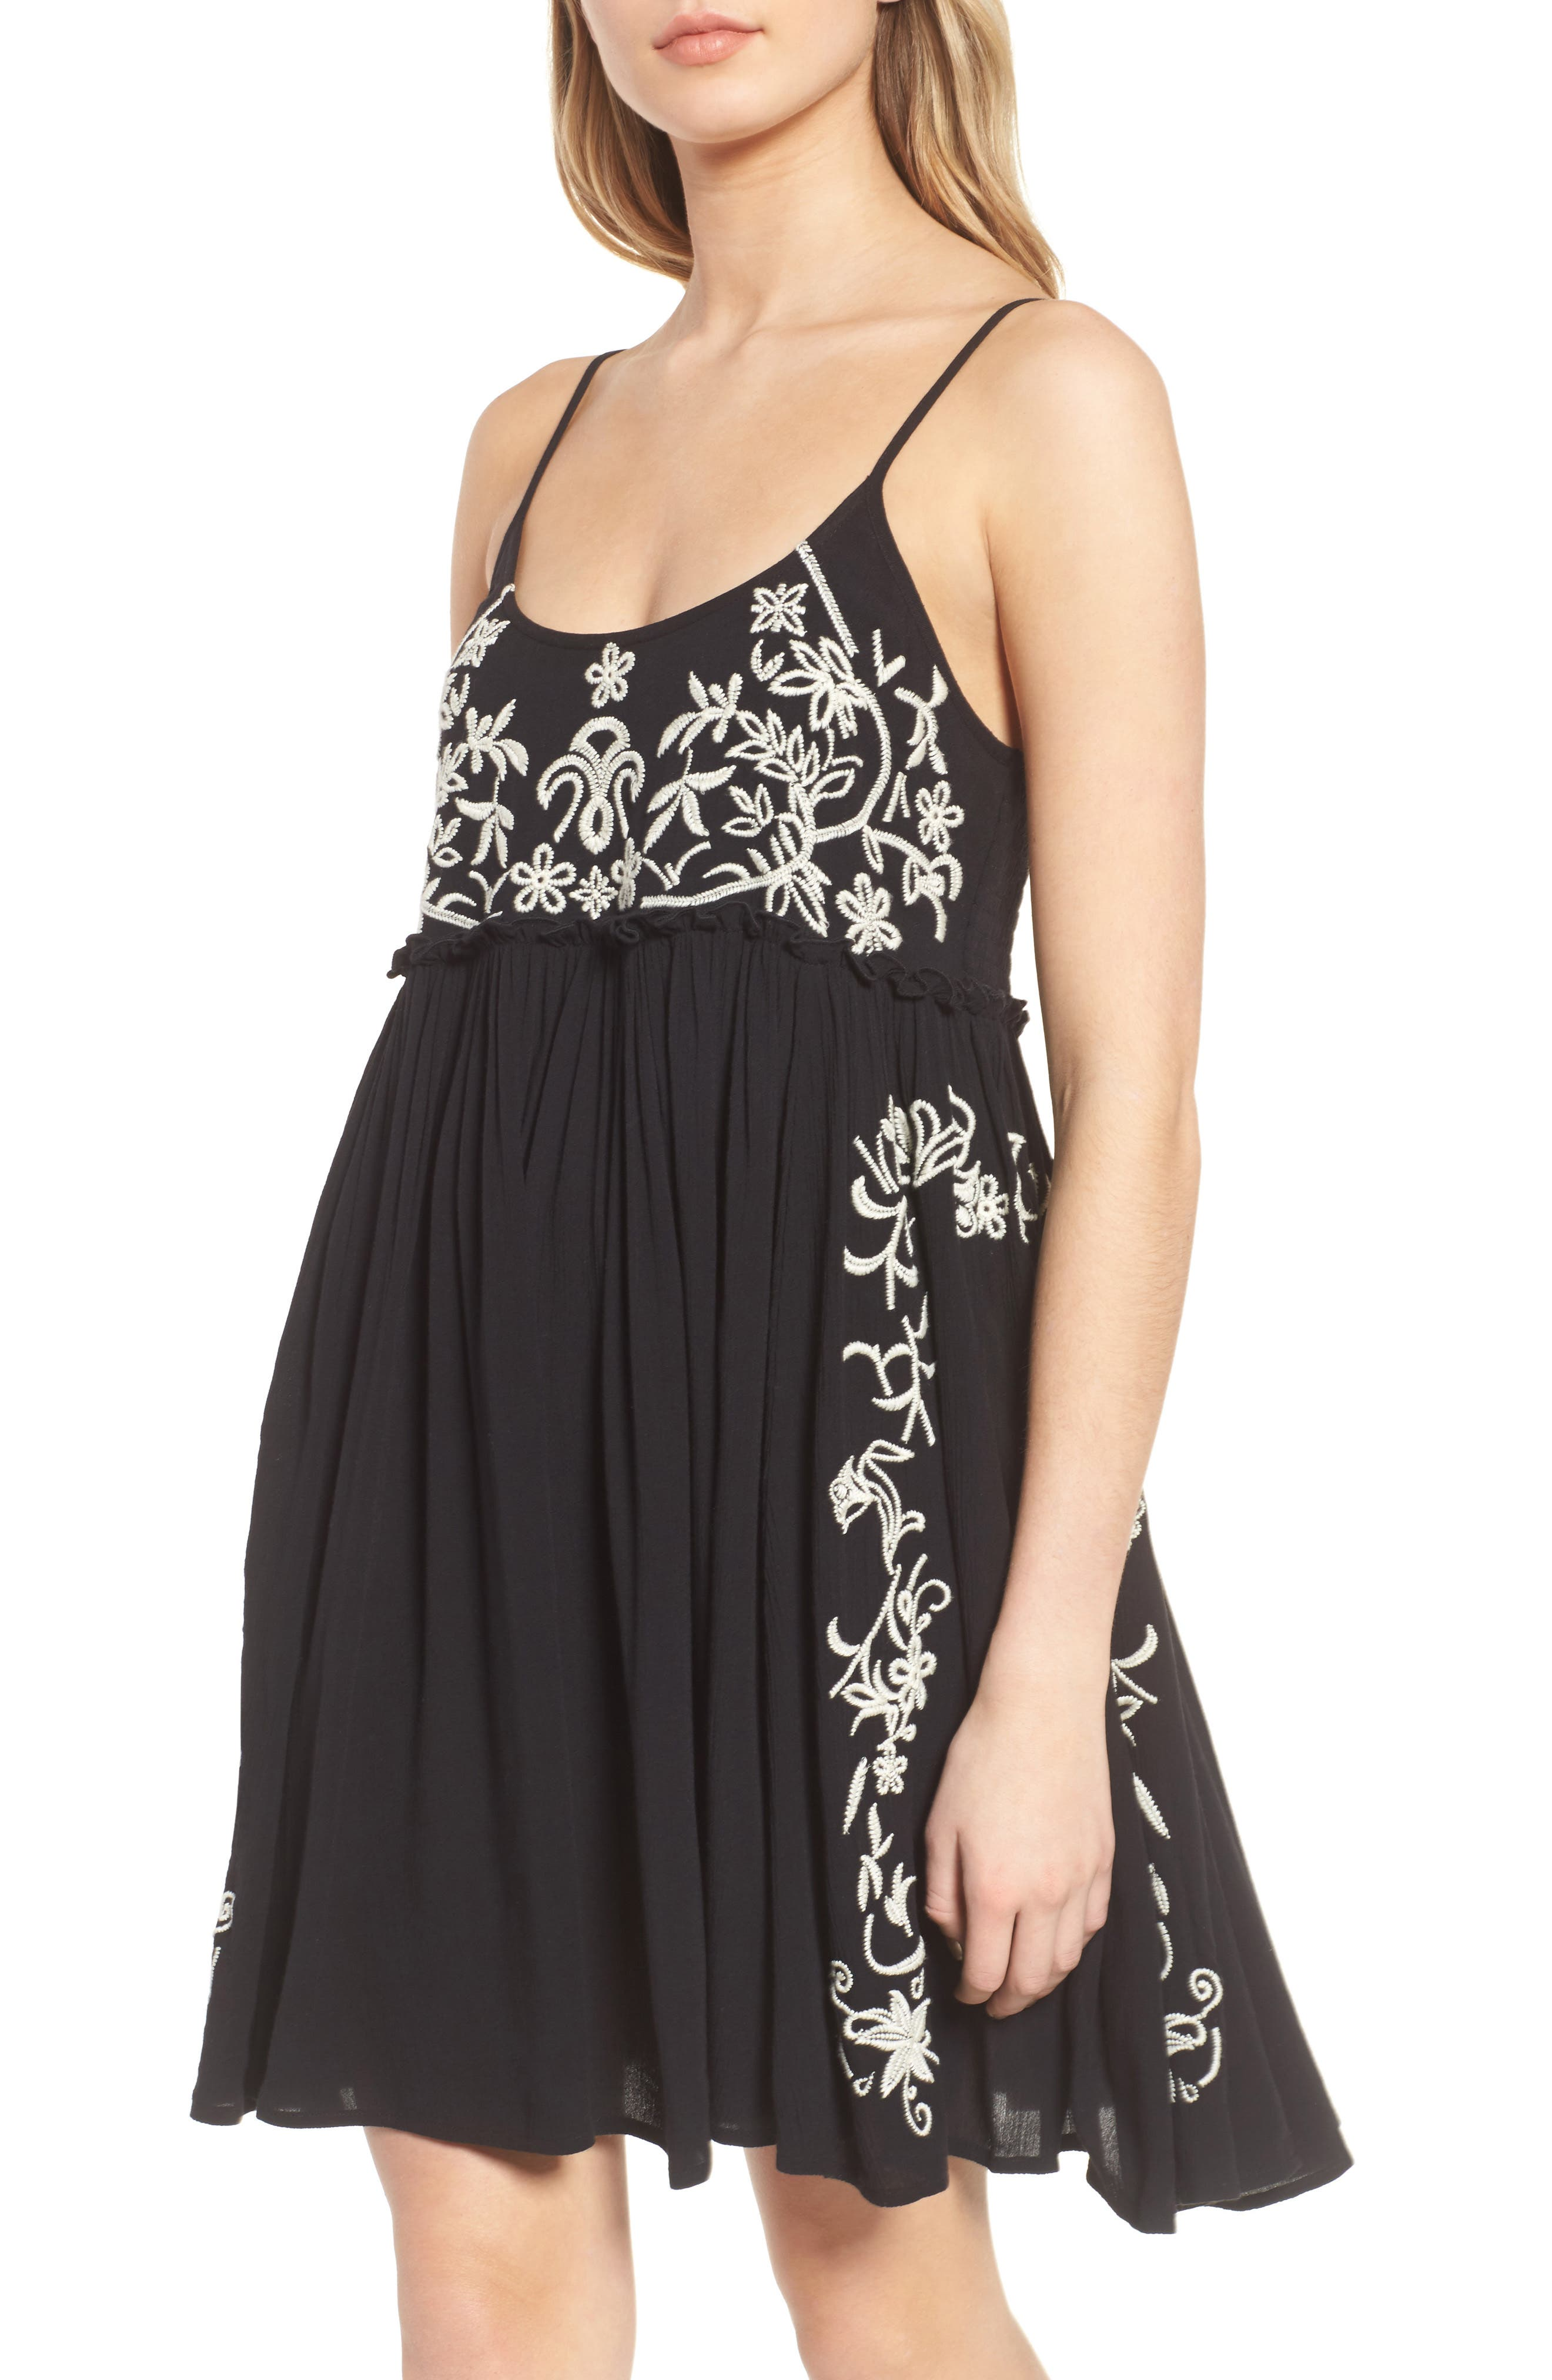 Embroidered Babydoll Dress,                             Alternate thumbnail 2, color,                             Black/ Ivory